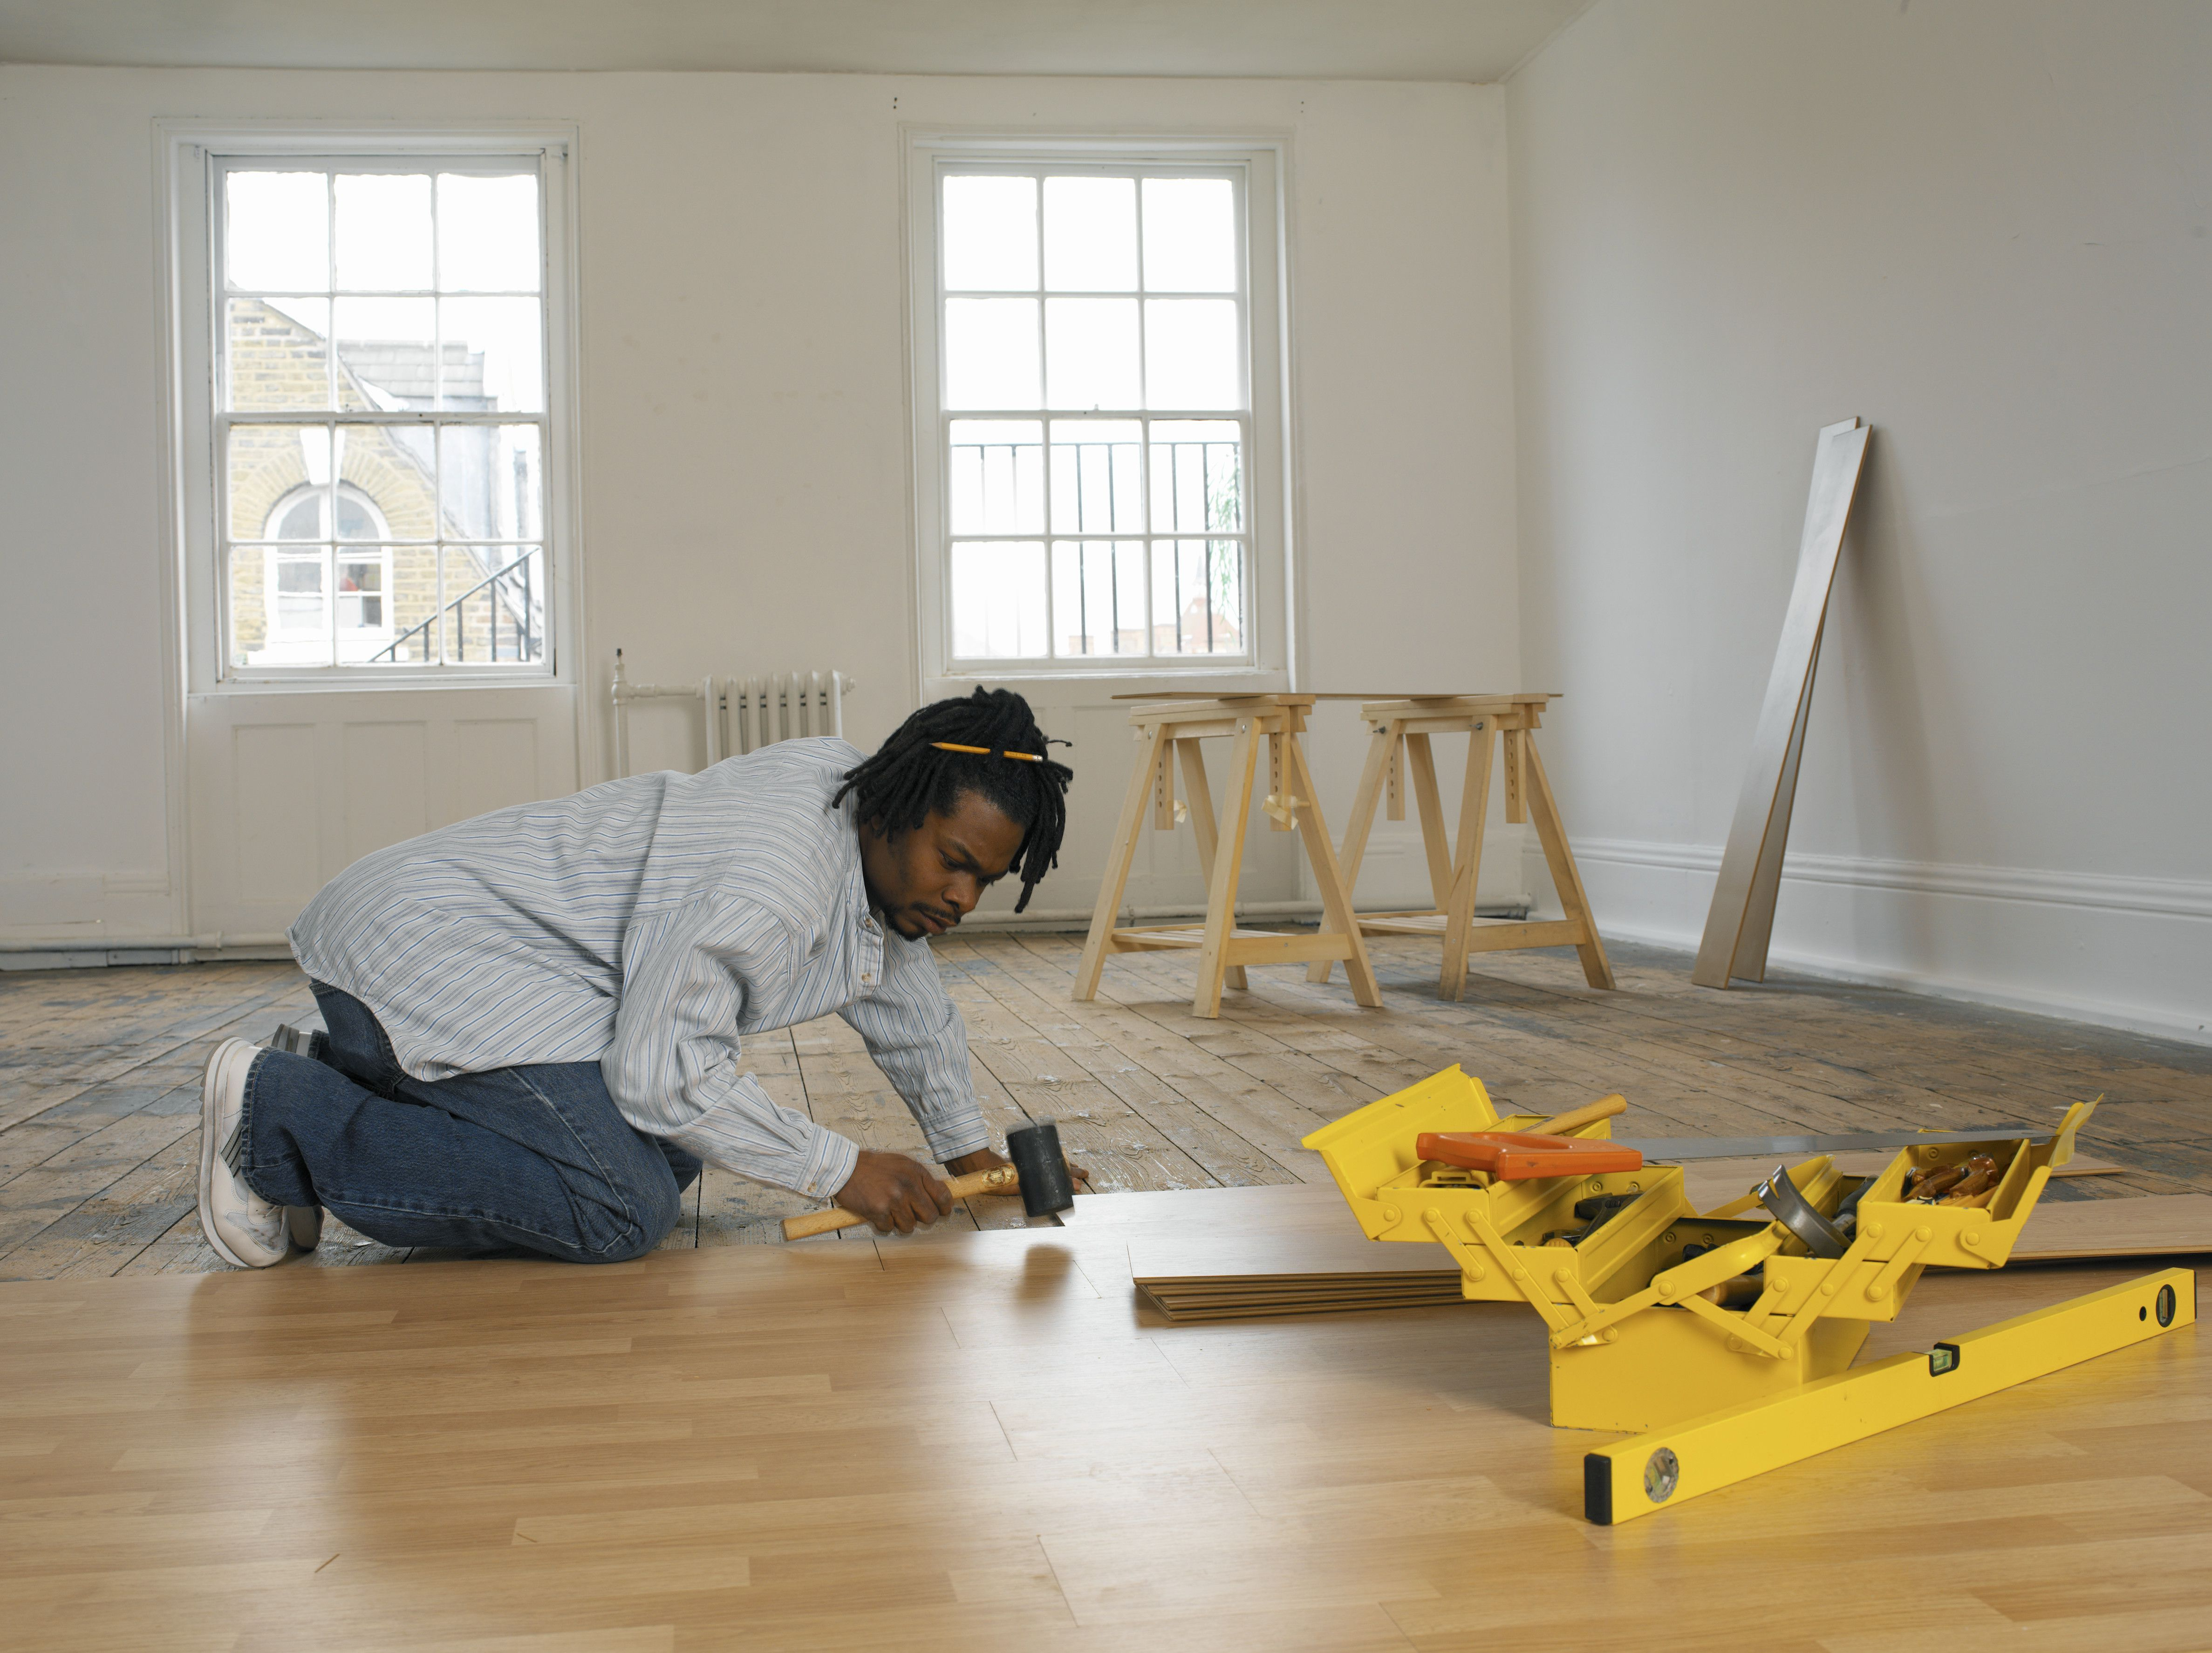 Major Brands Are Usually Best When Buying Laminate Flooring For